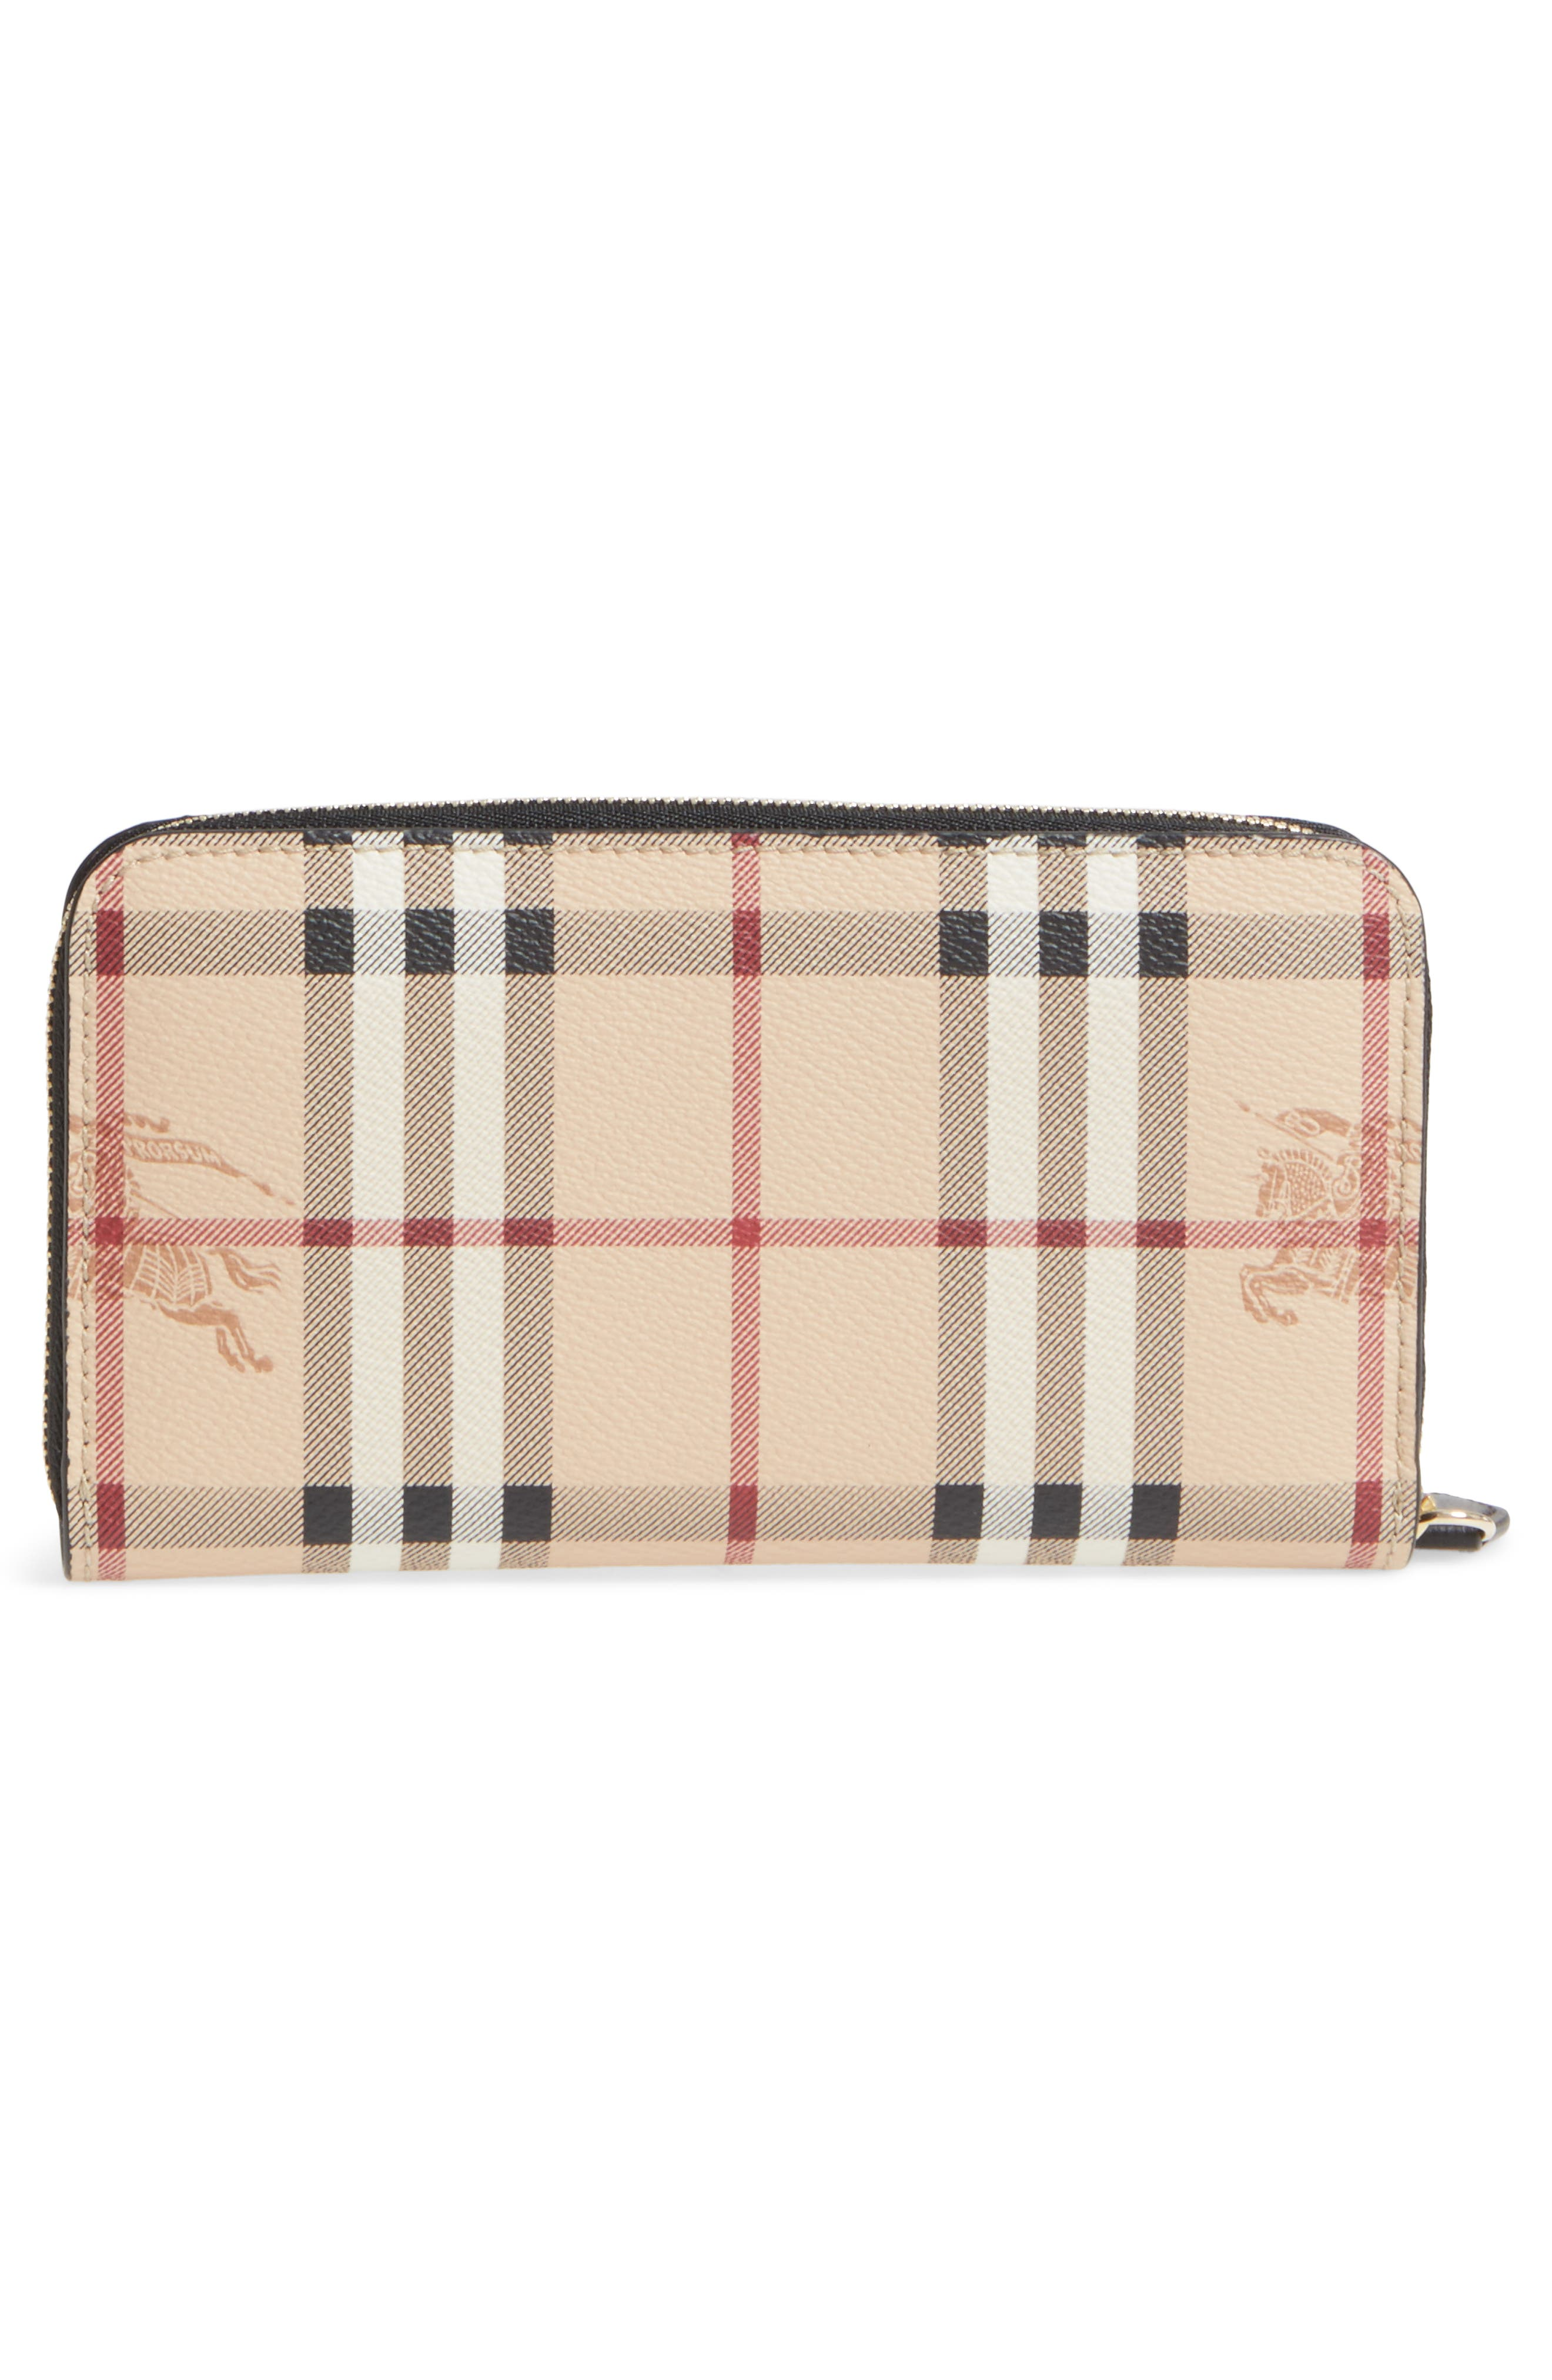 Elmore Check Coated Canvas & Leather Zip Around Wallet,                             Alternate thumbnail 3, color,                             001